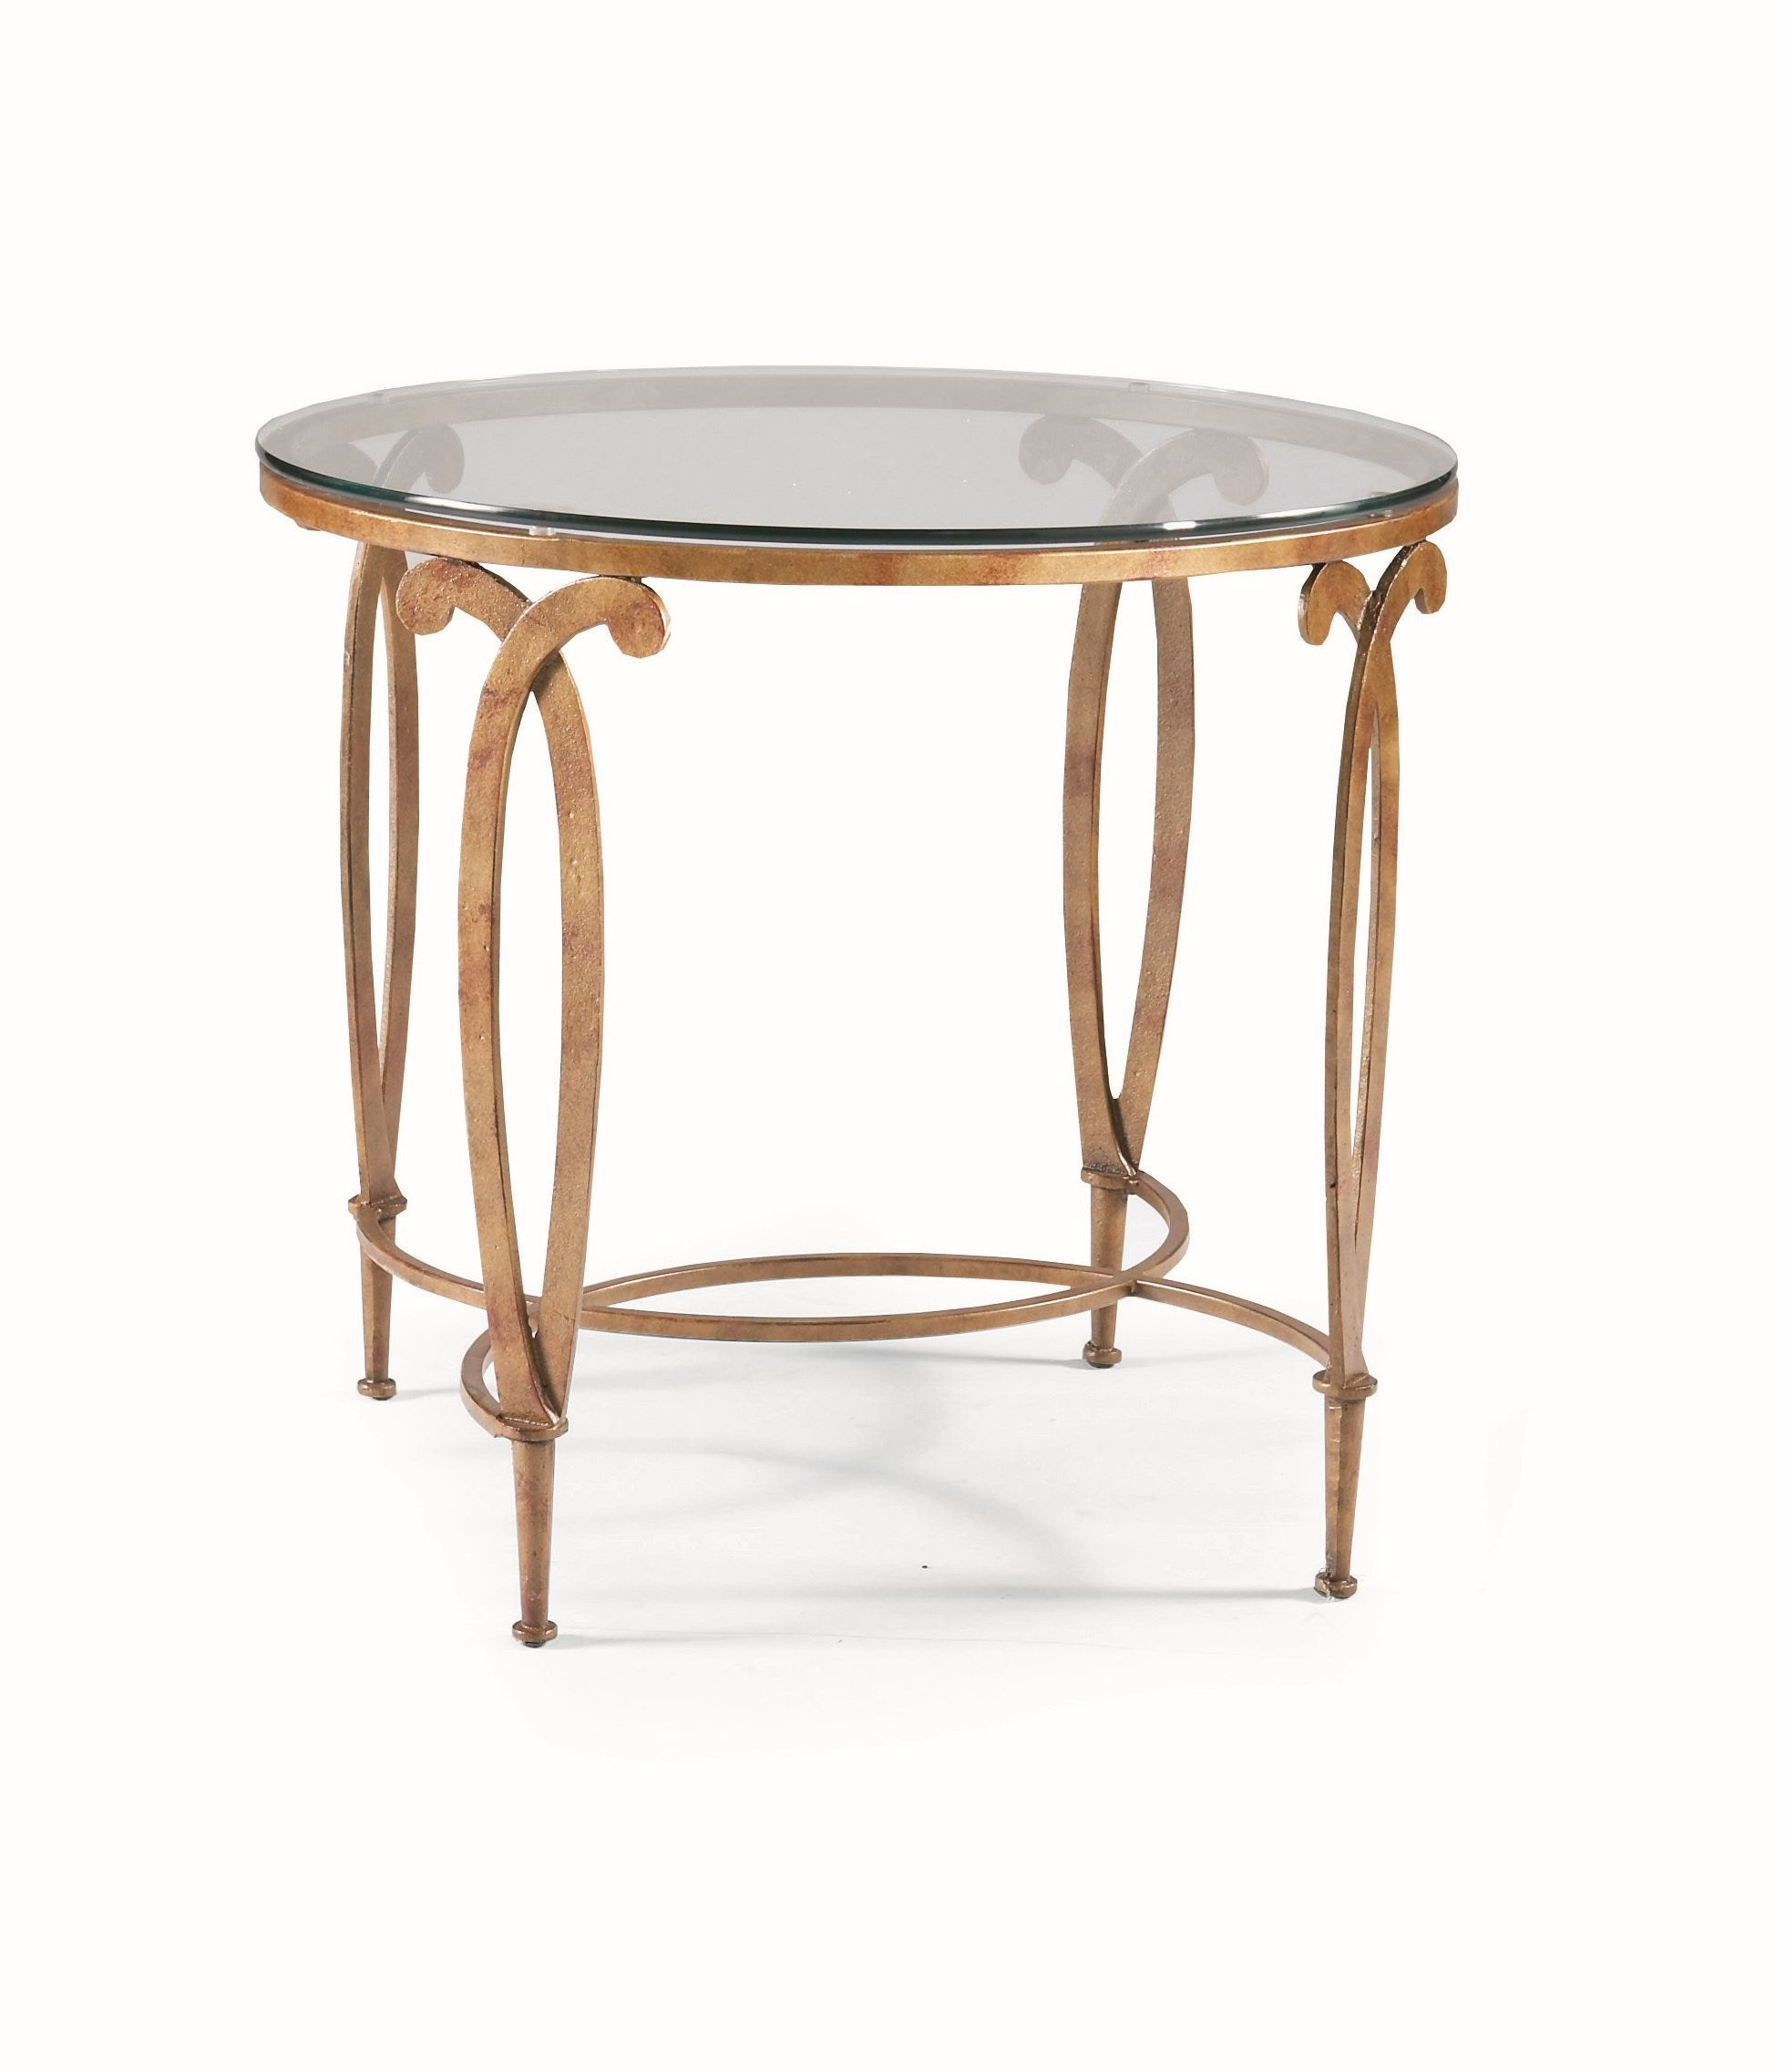 CTH Sherrill Occasional Living Room Round Lamp Table M68 30 At Douds  Furniture